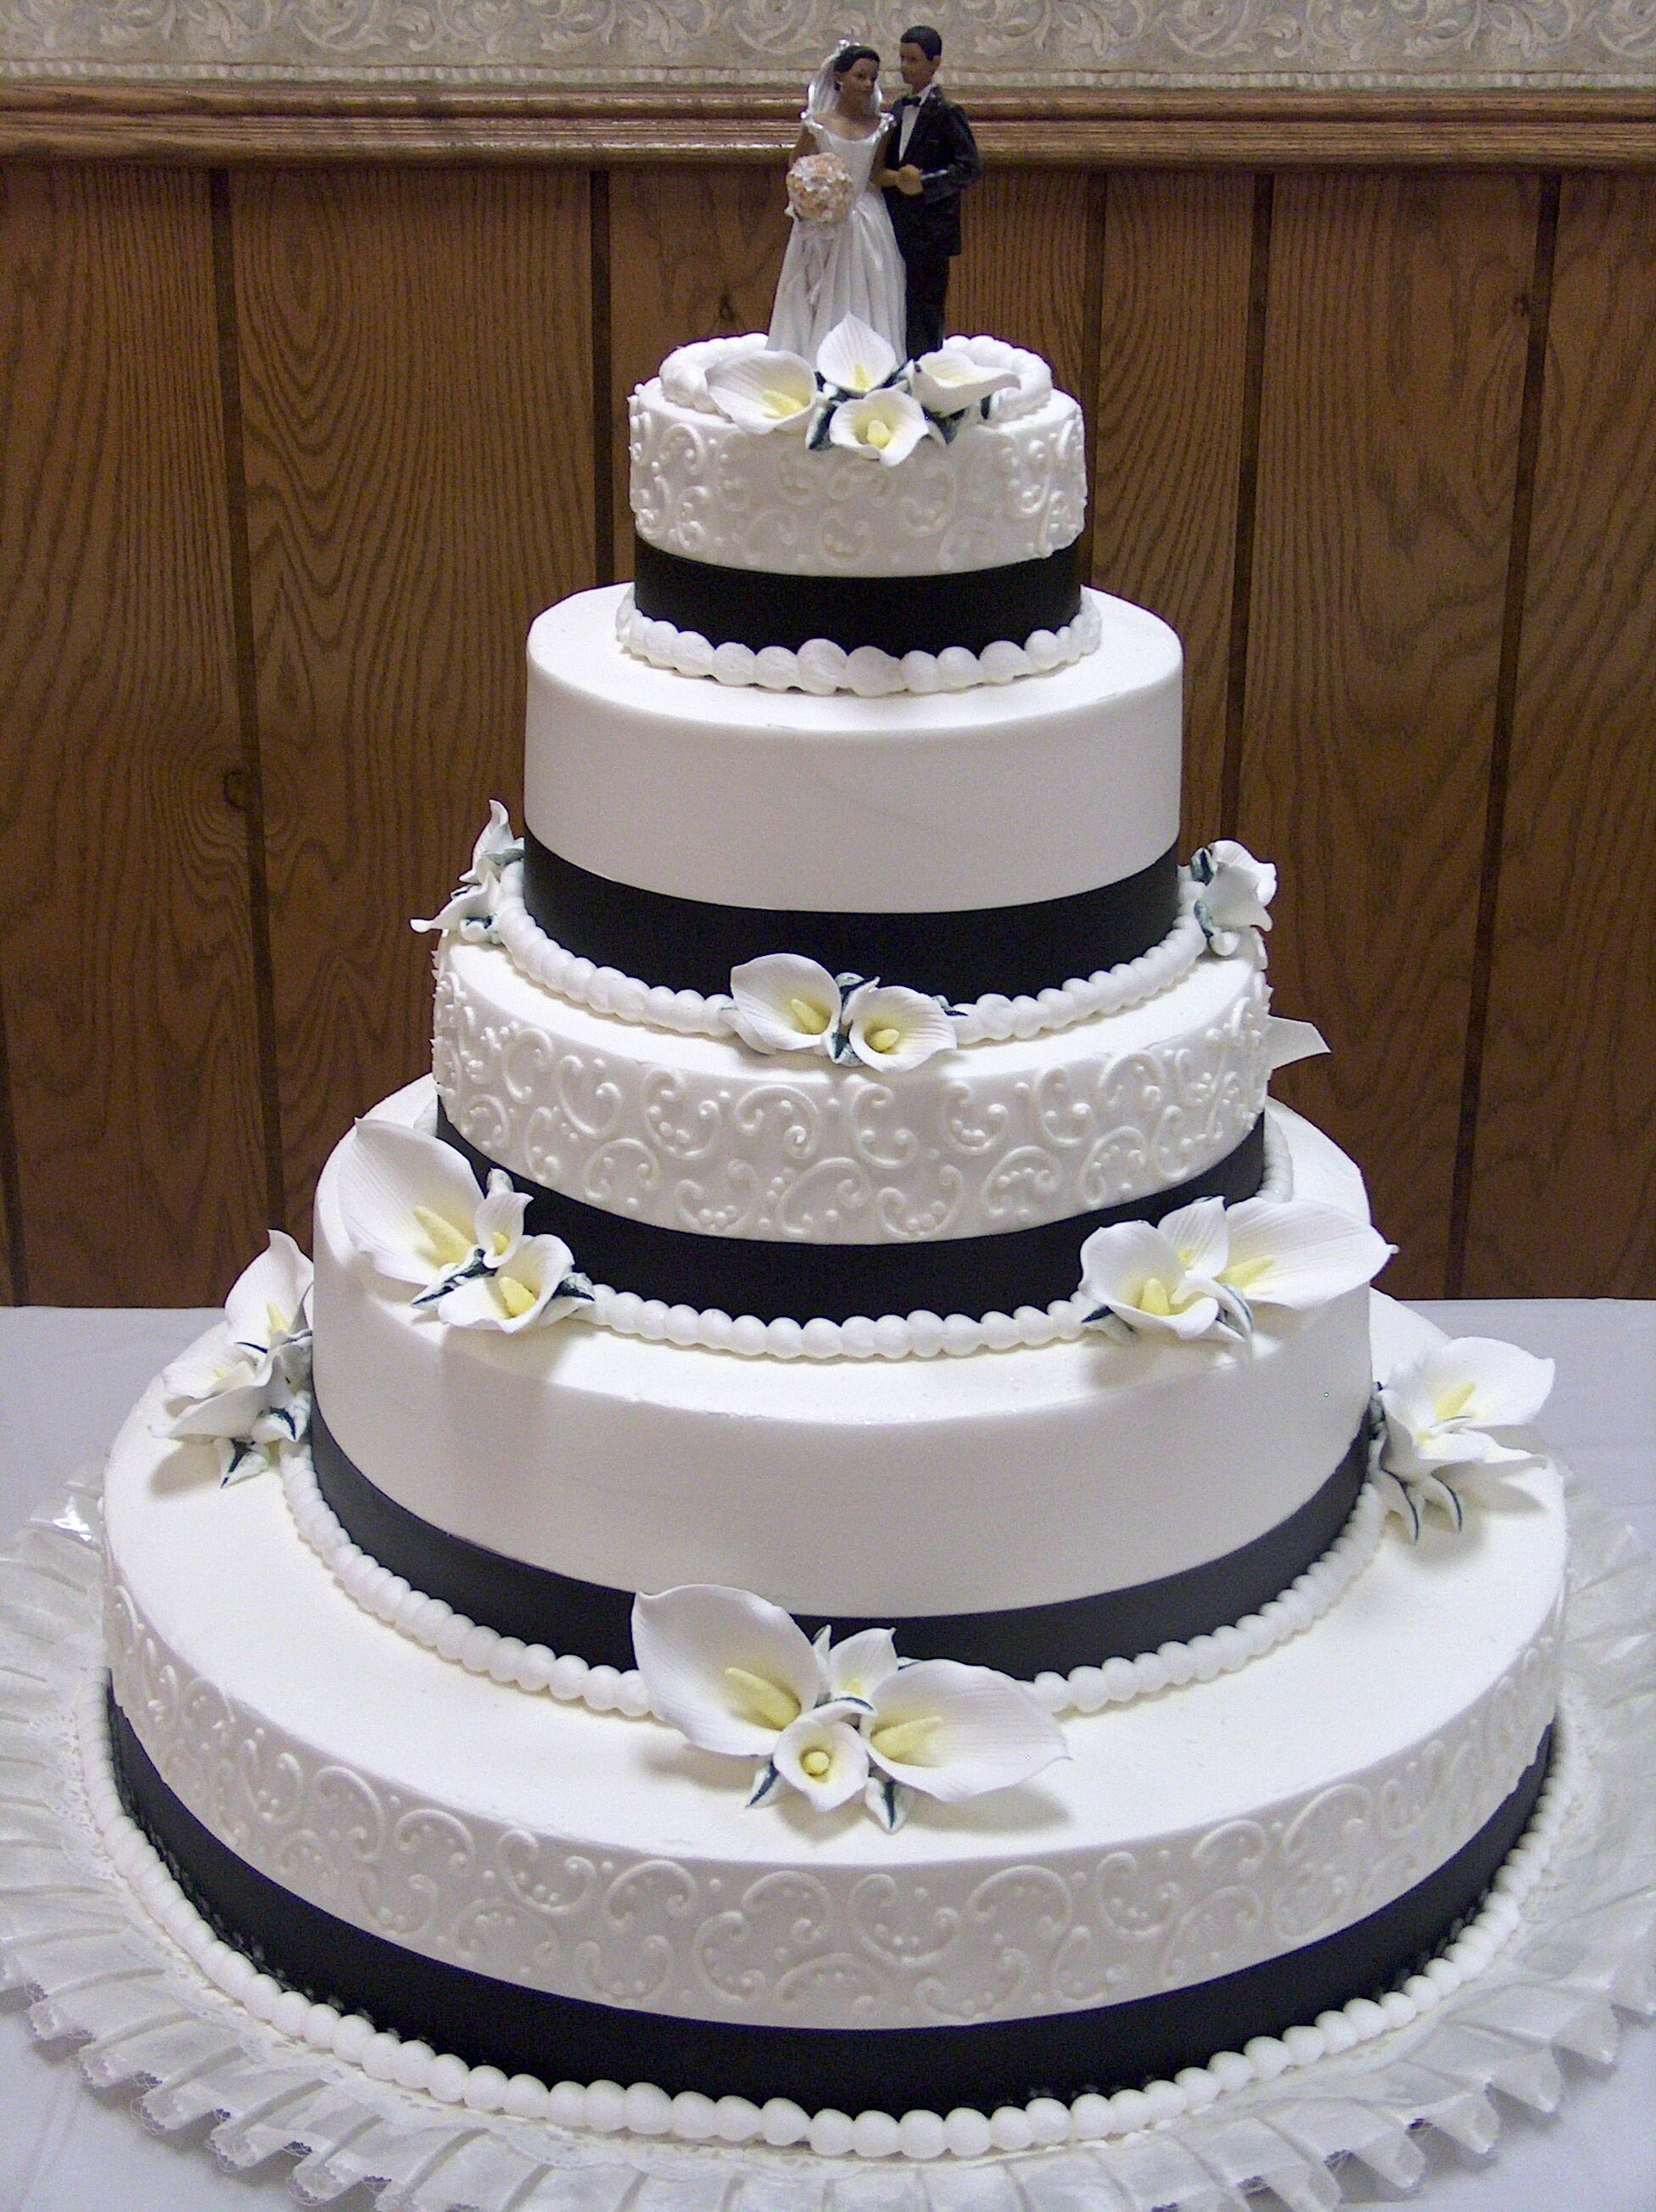 wedding cake bakeries york pa moio s italian pastry shop monroeville pa 21902